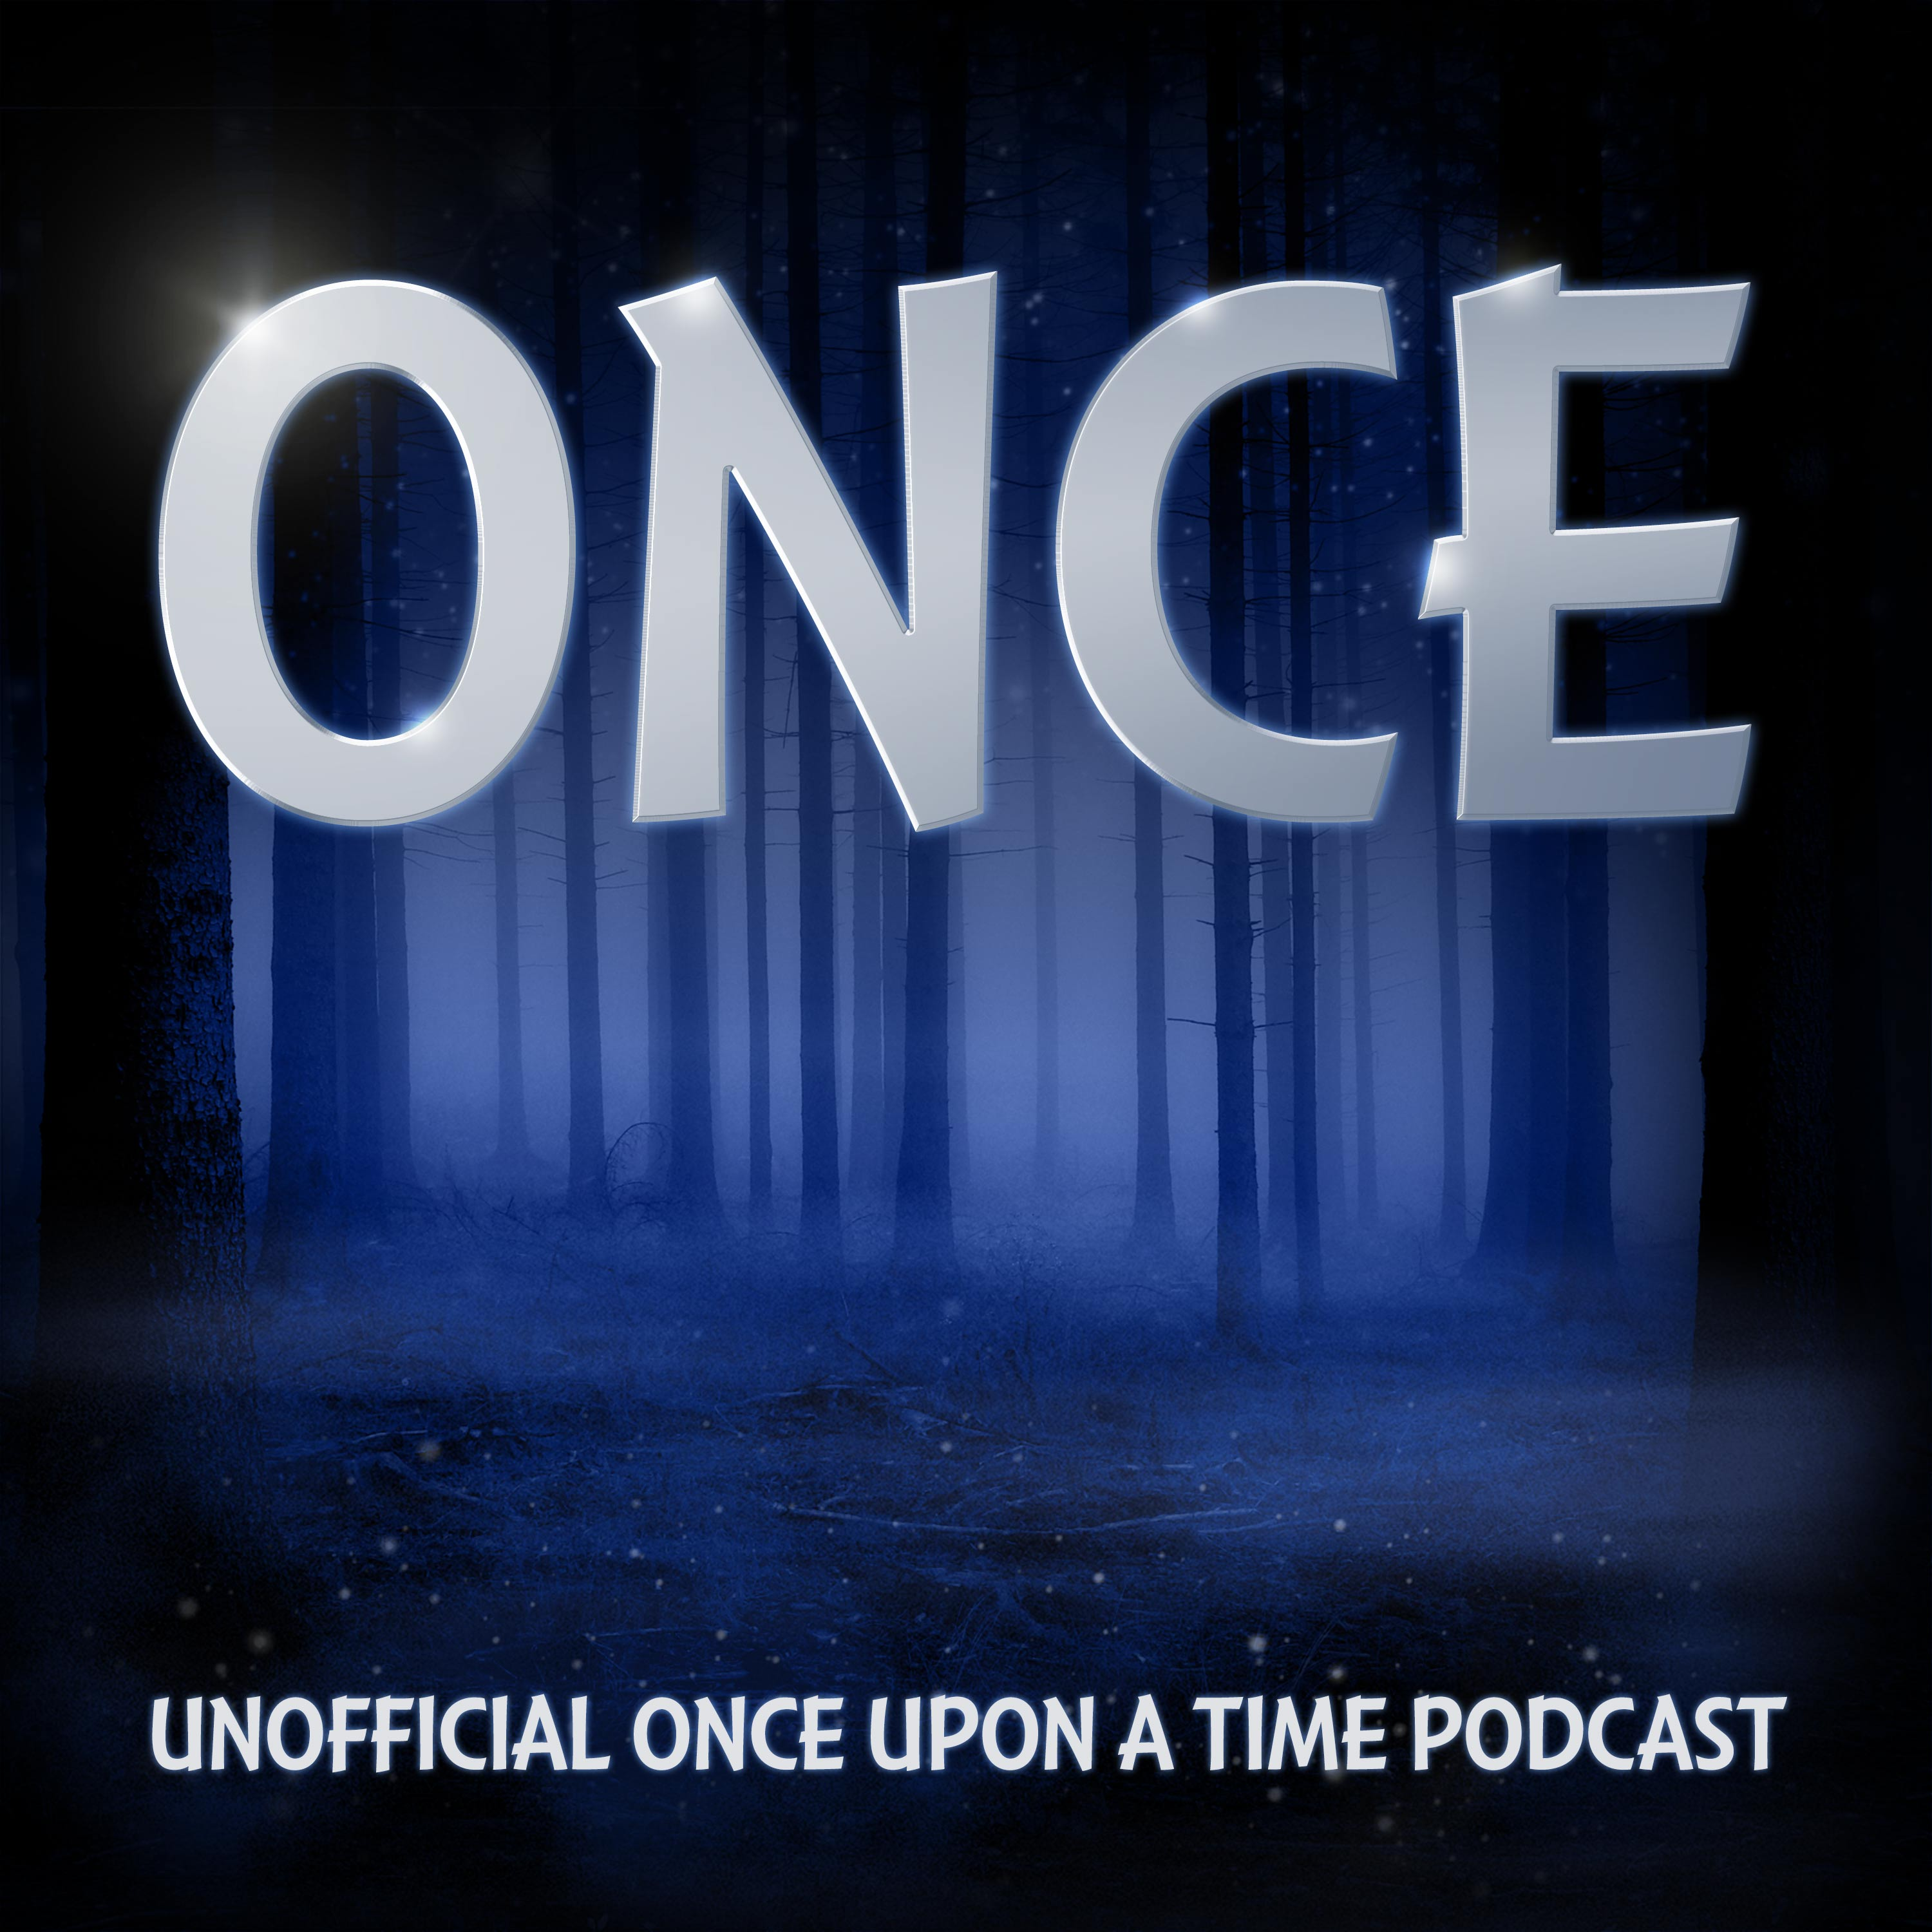 ONCE podcast